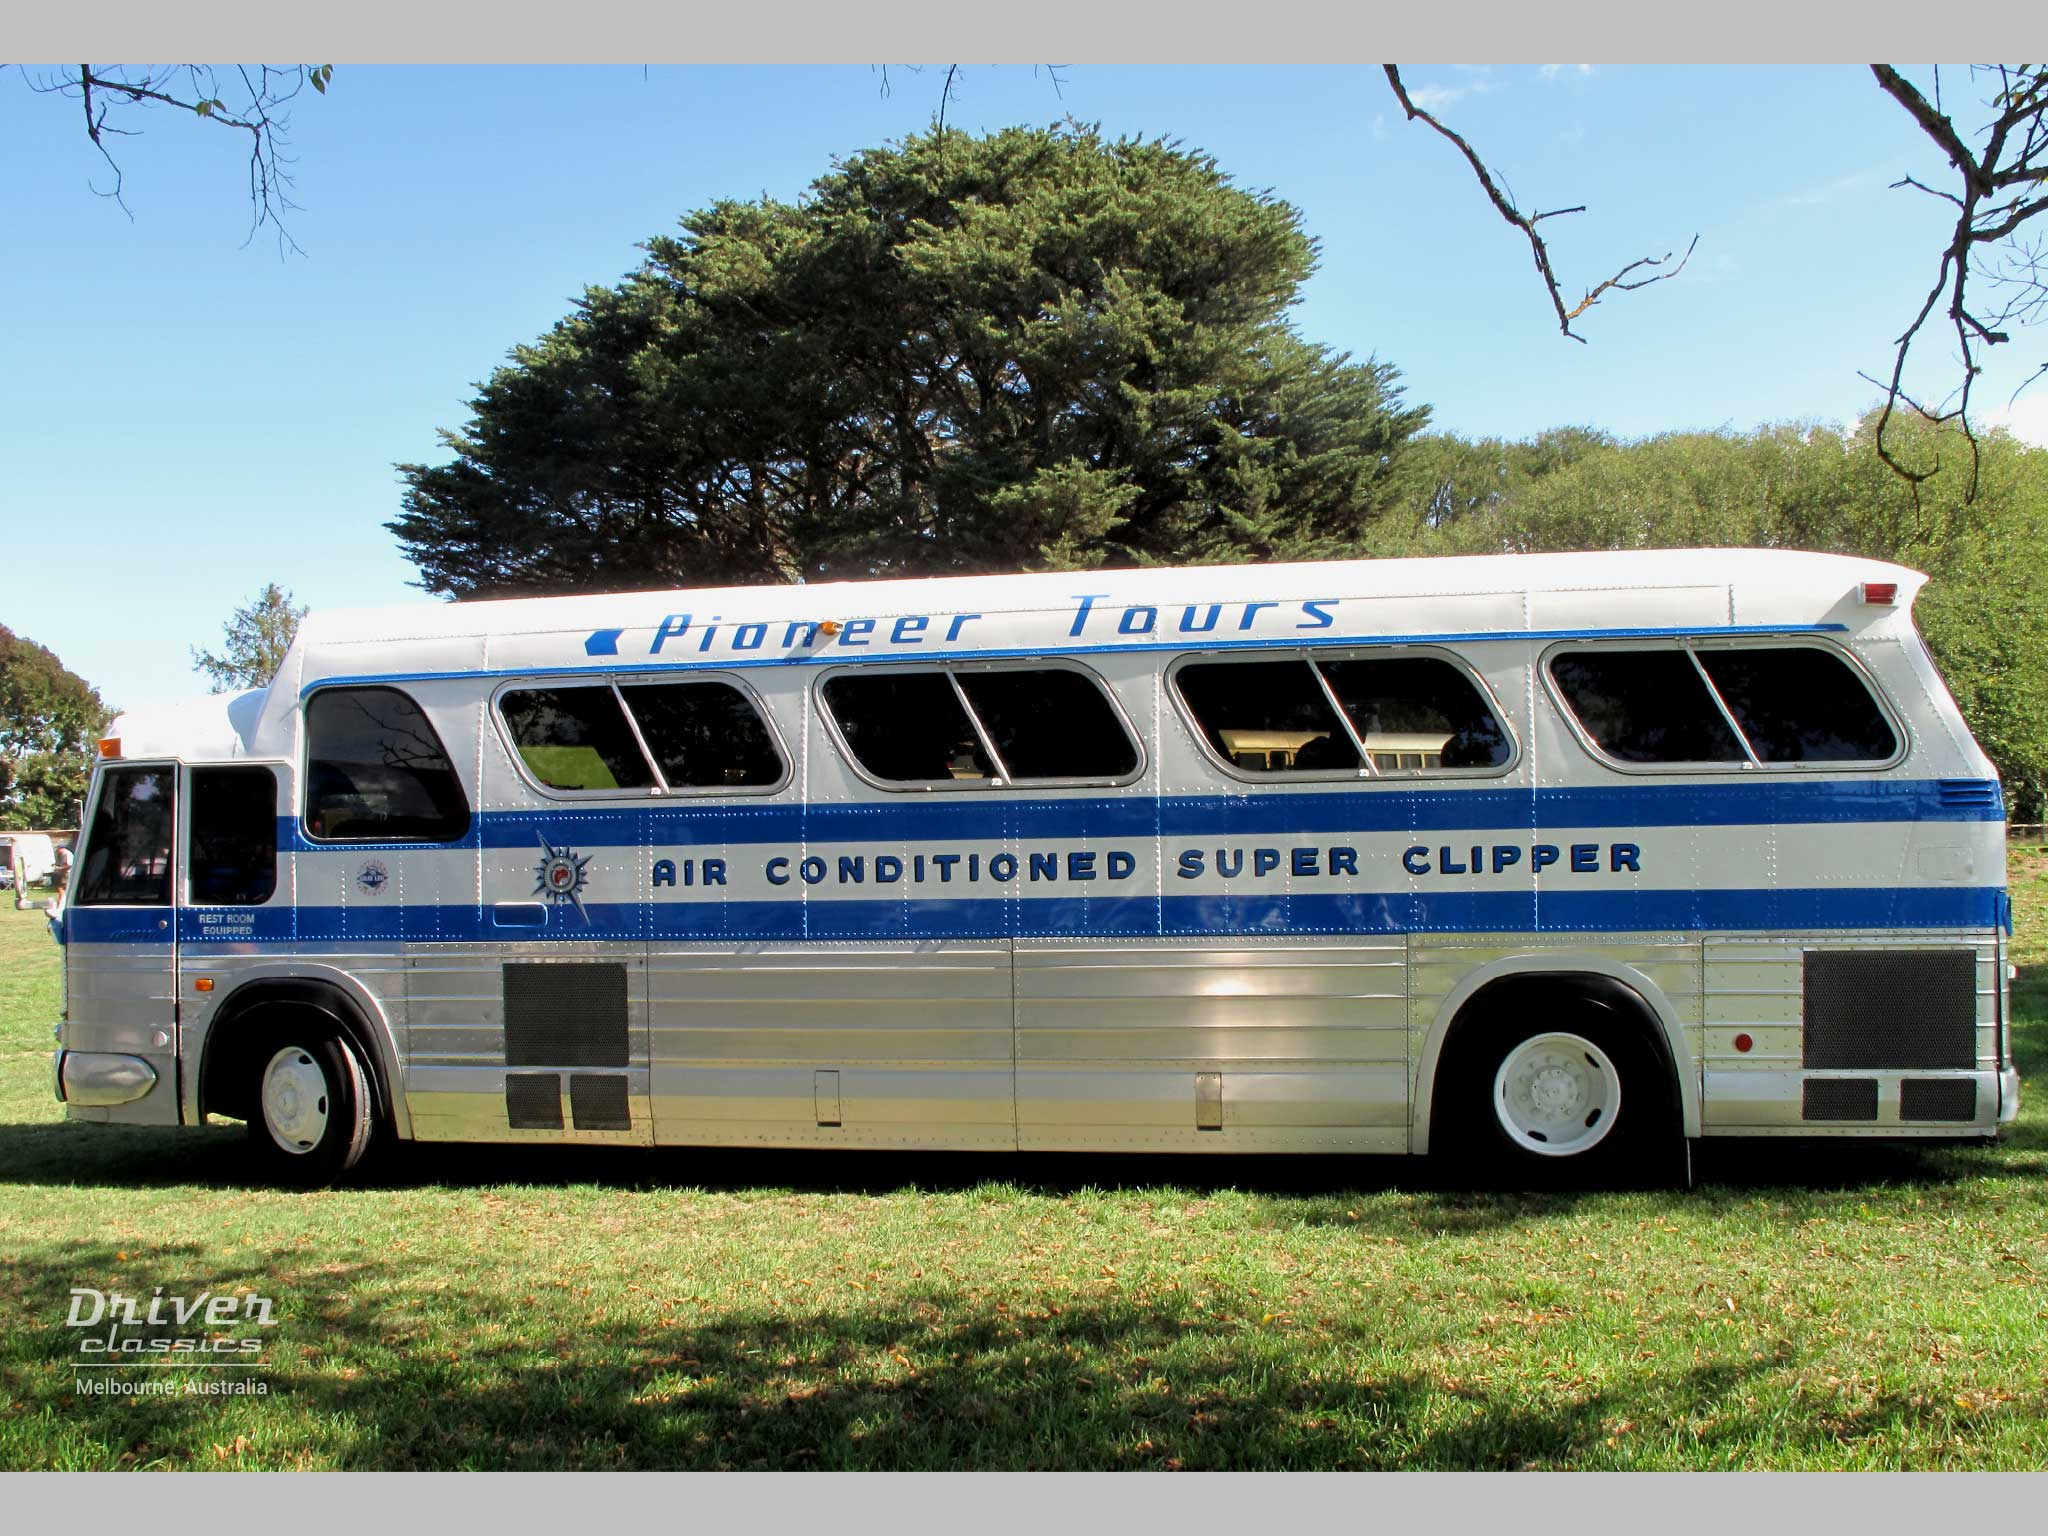 1968 GMC PD4107 bus, side profile showing rivetts, Lancefield Victoria